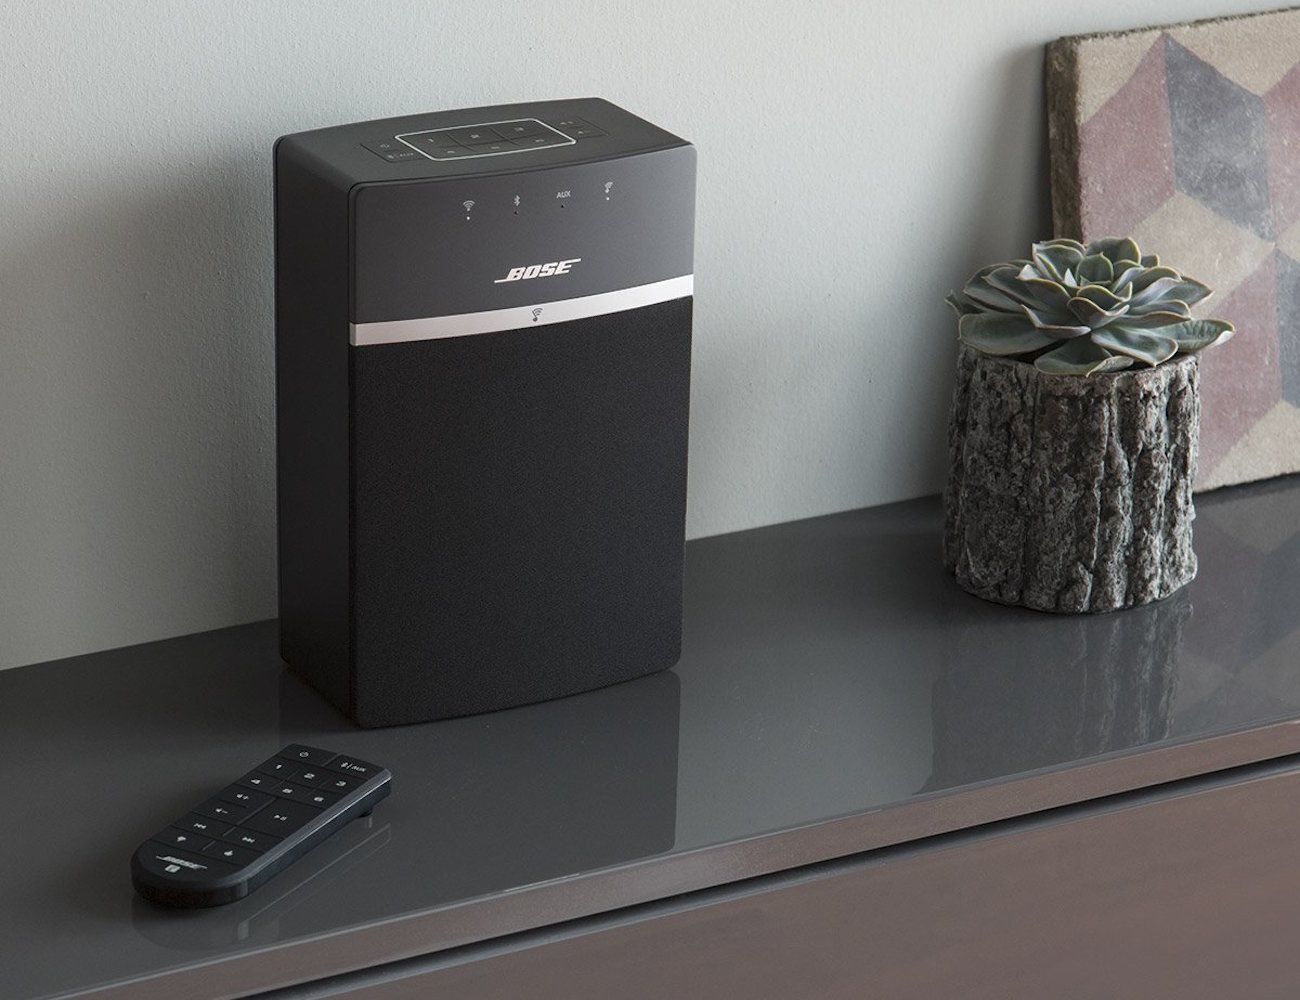 soundtouch-10-wireless-music-system-from-bose-01